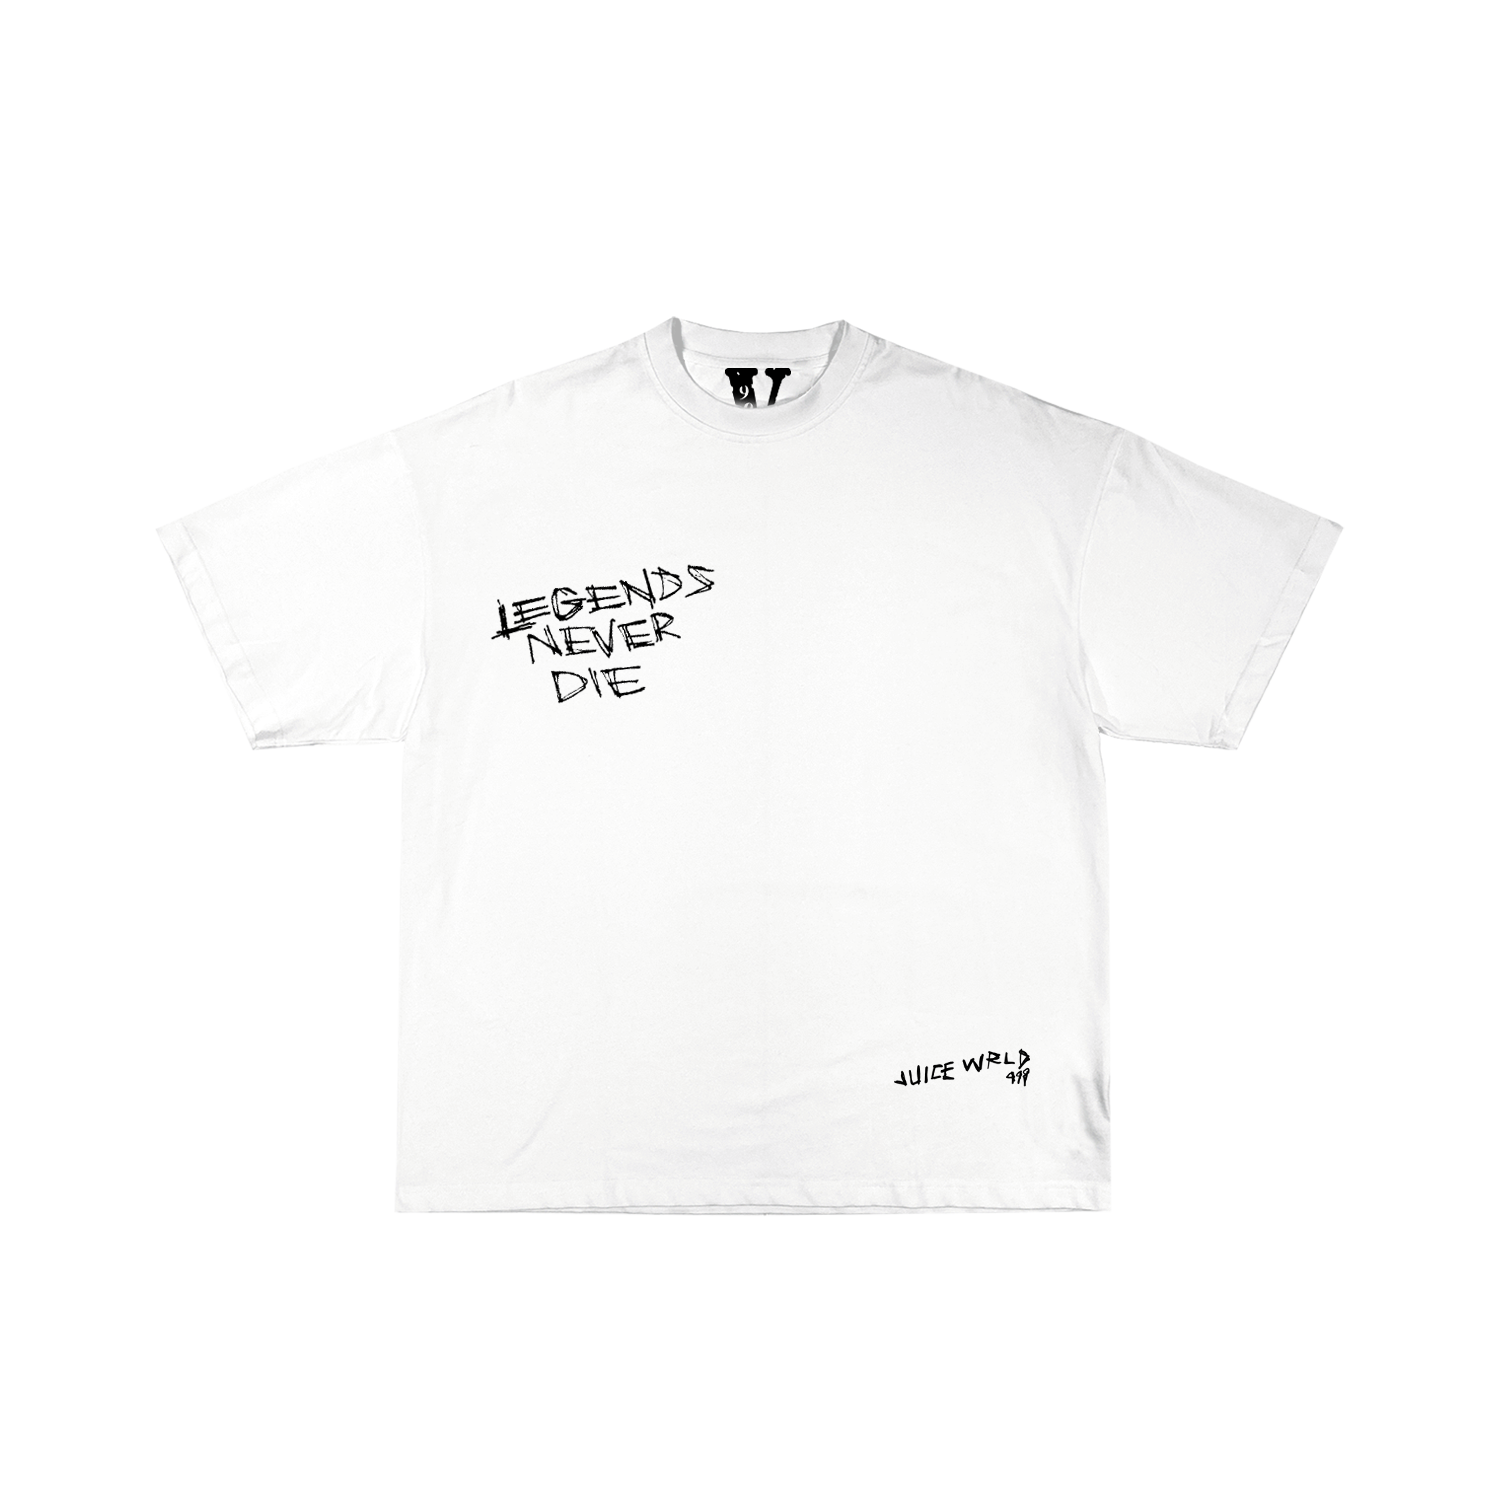 Juice WRLD X VLONE Legends Never Die Tee in White + Digital Album - JuiceWrld